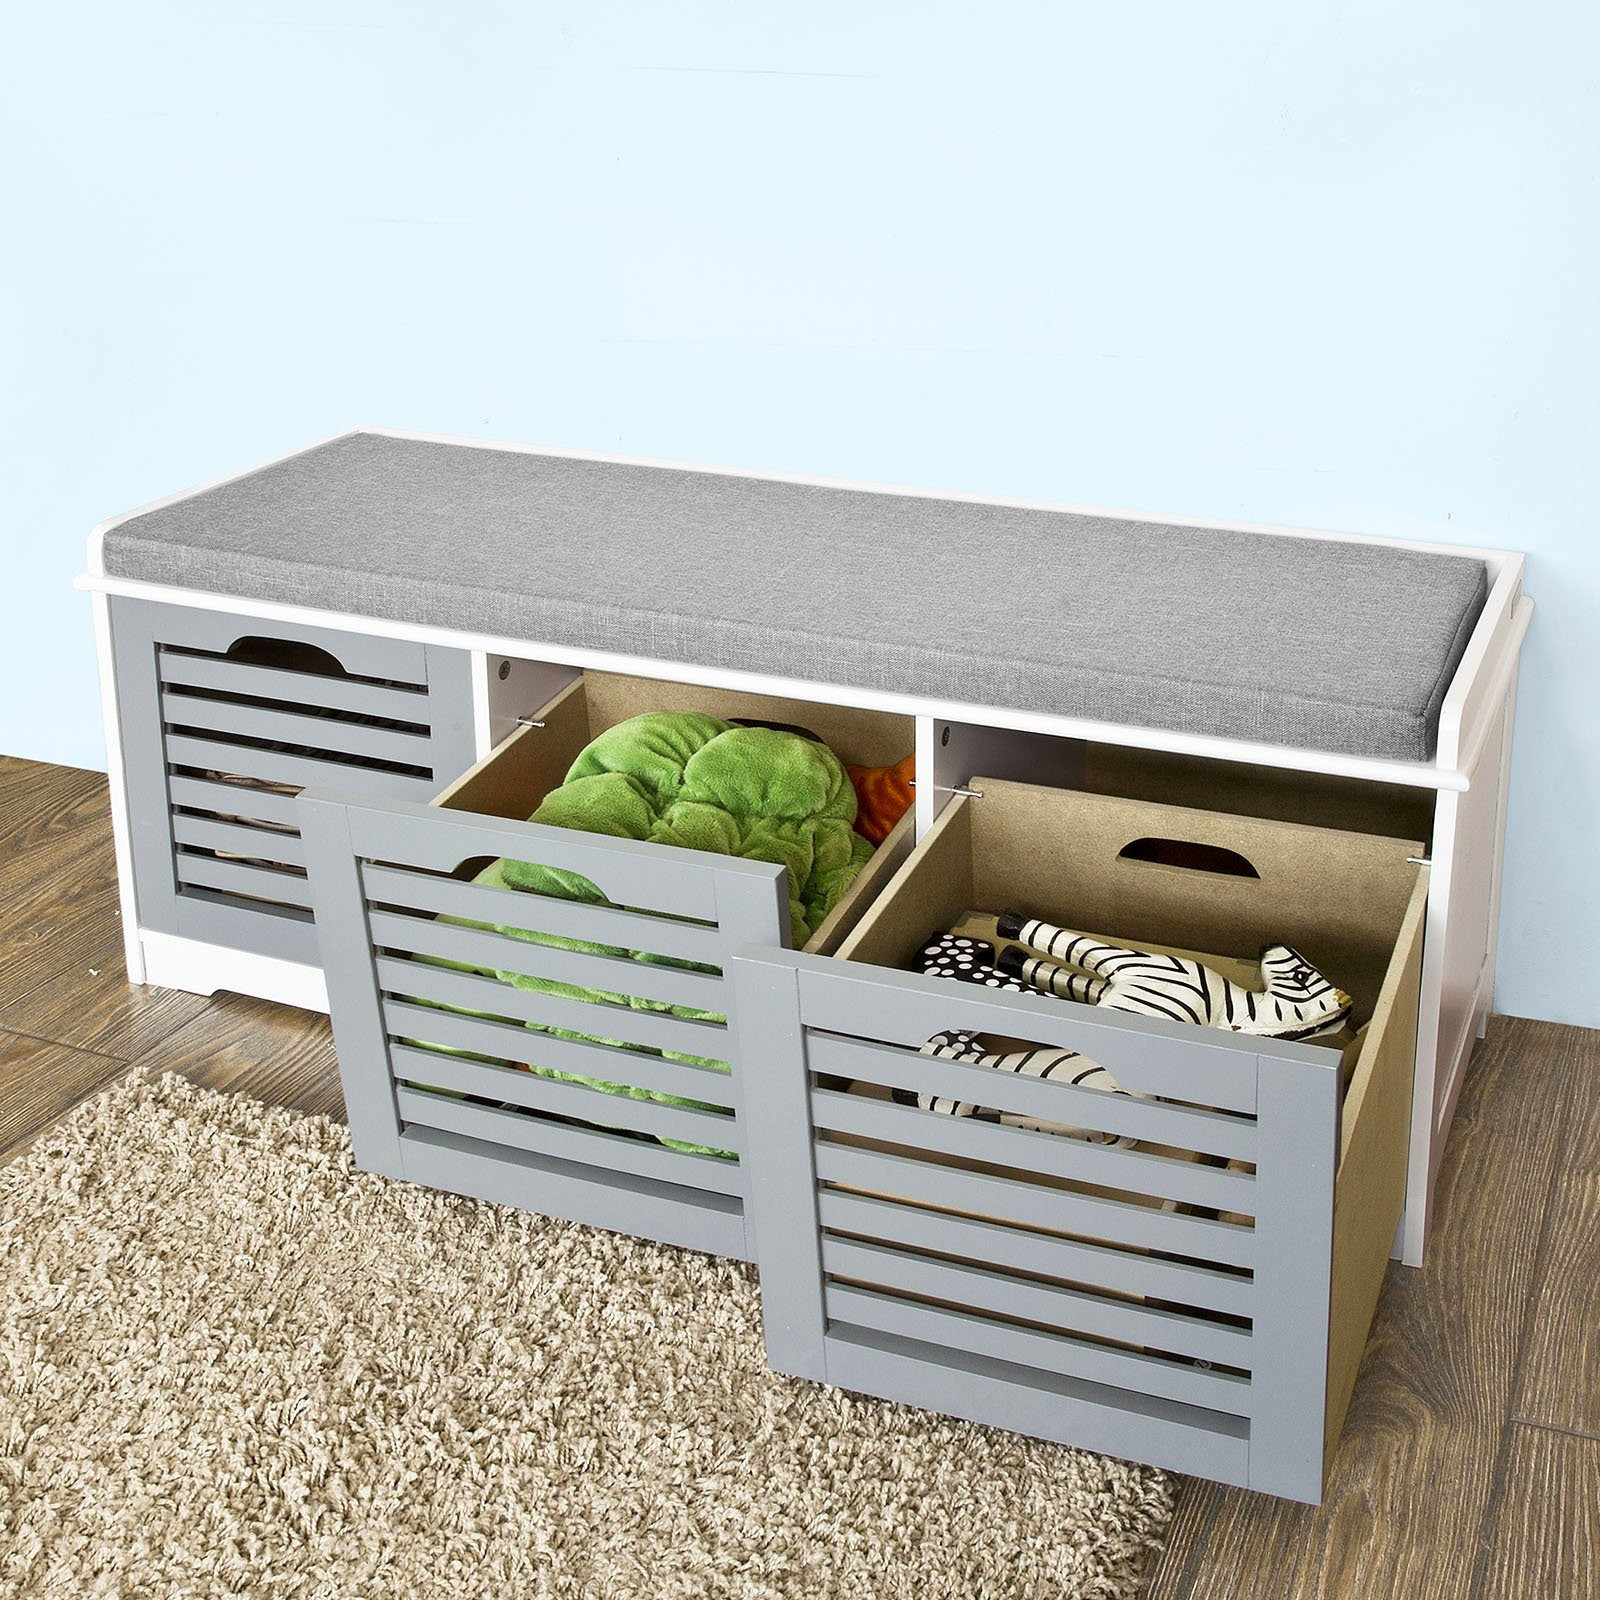 Padded Bench Seat with Storage Beautiful Haotian Fsr23 Hg Storage Bench with 3 Drawers Padded Seat